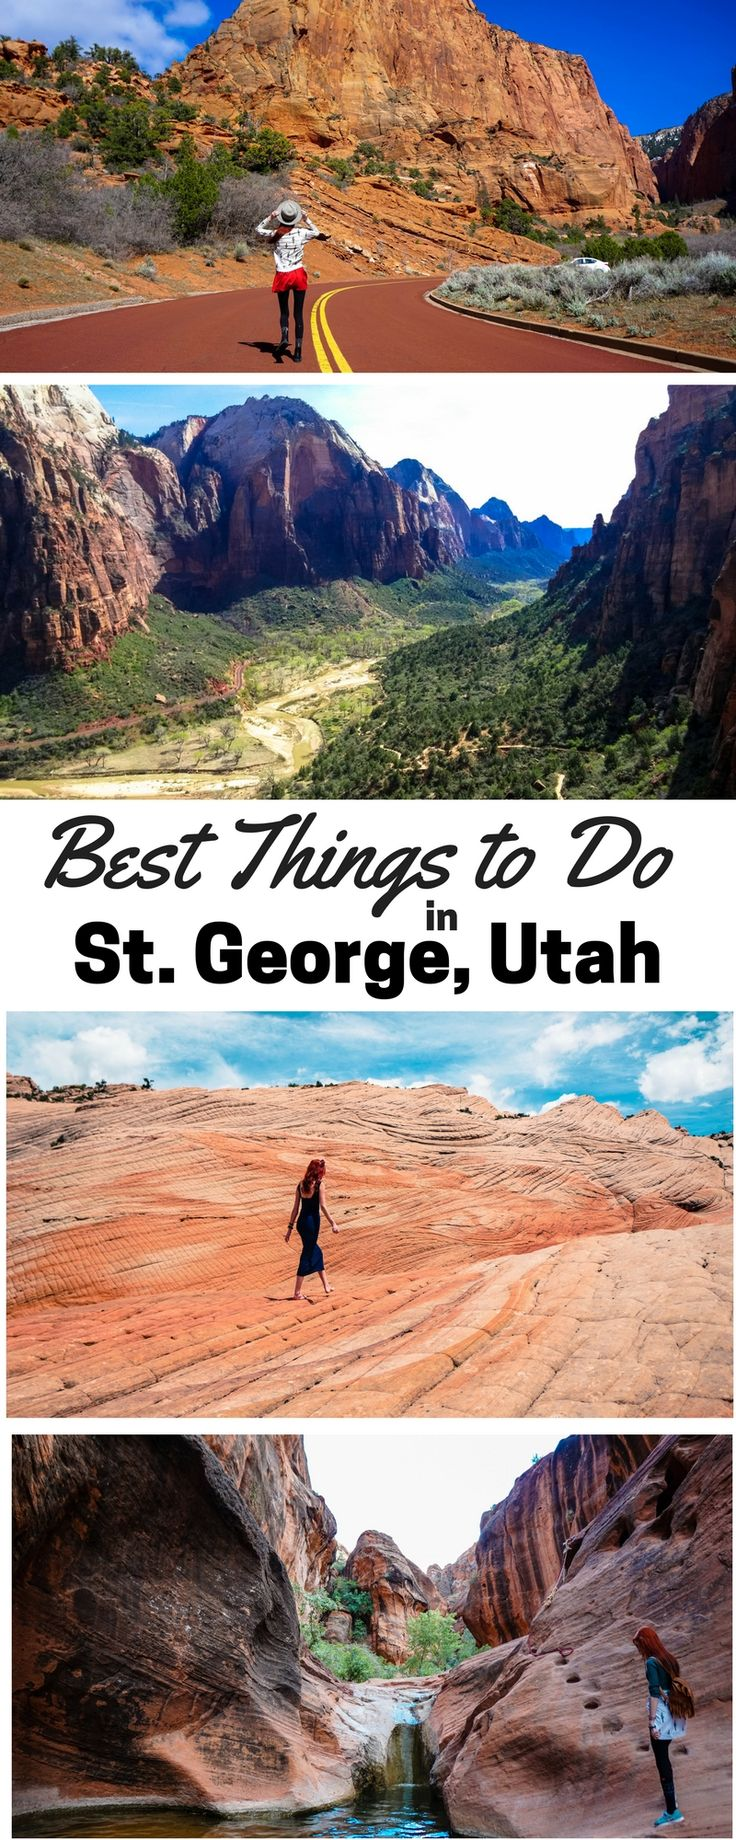 Top Things to do in St. George, Utah